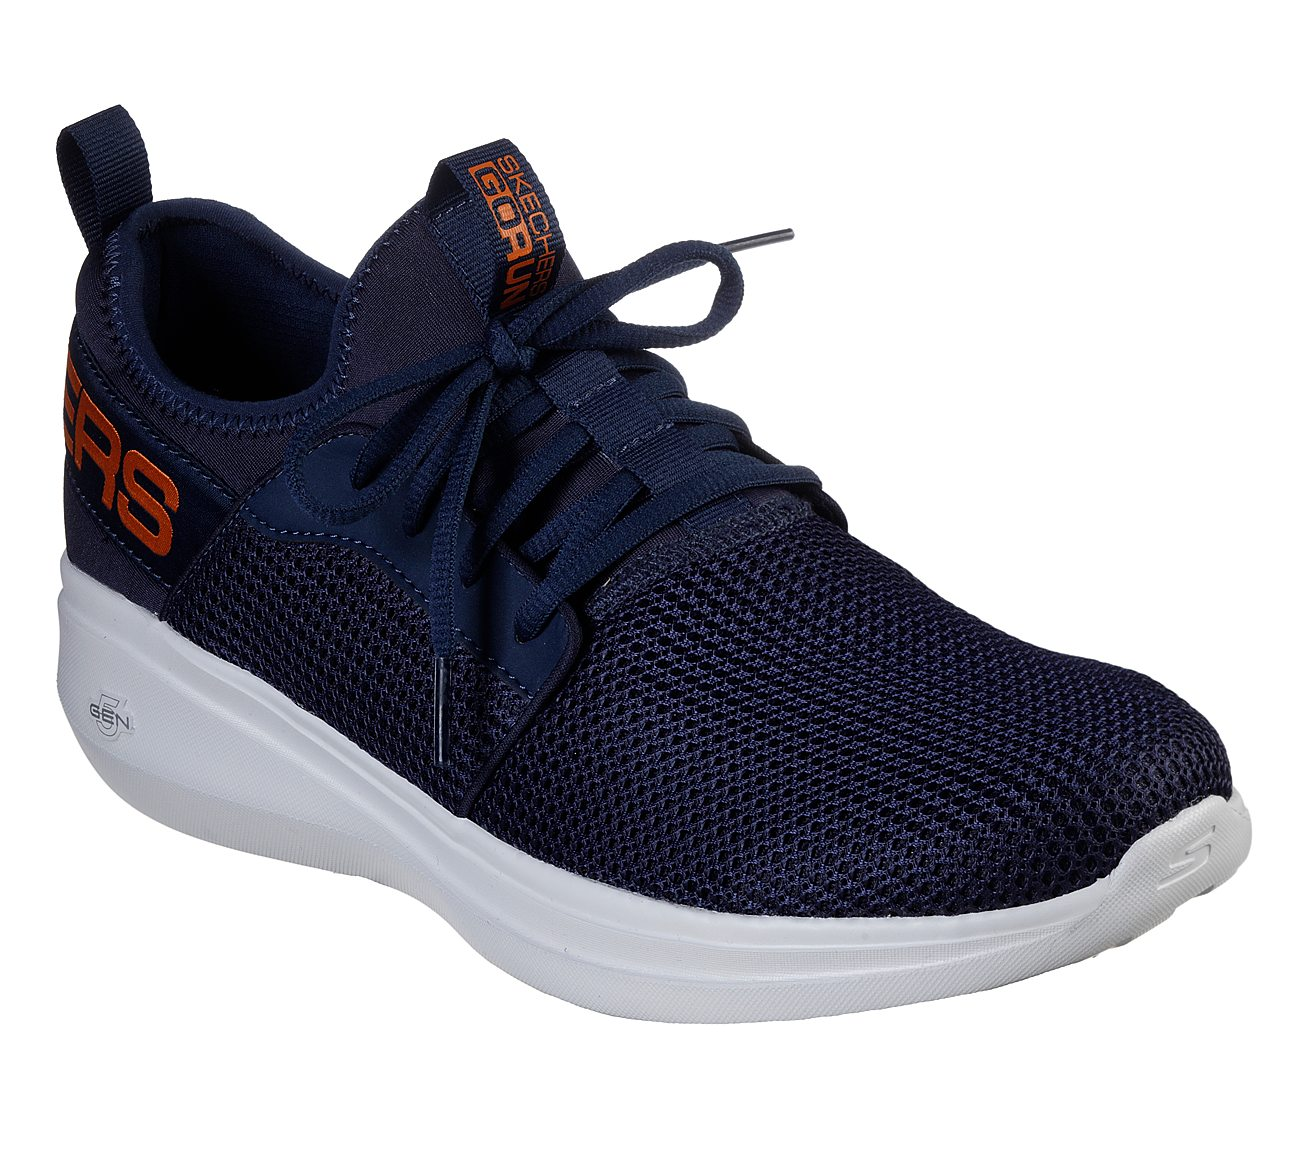 ffbfabd0c8b3 Buy SKECHERS Skechers GOrun Fast - Valor Running Shoes Shoes only $65.00